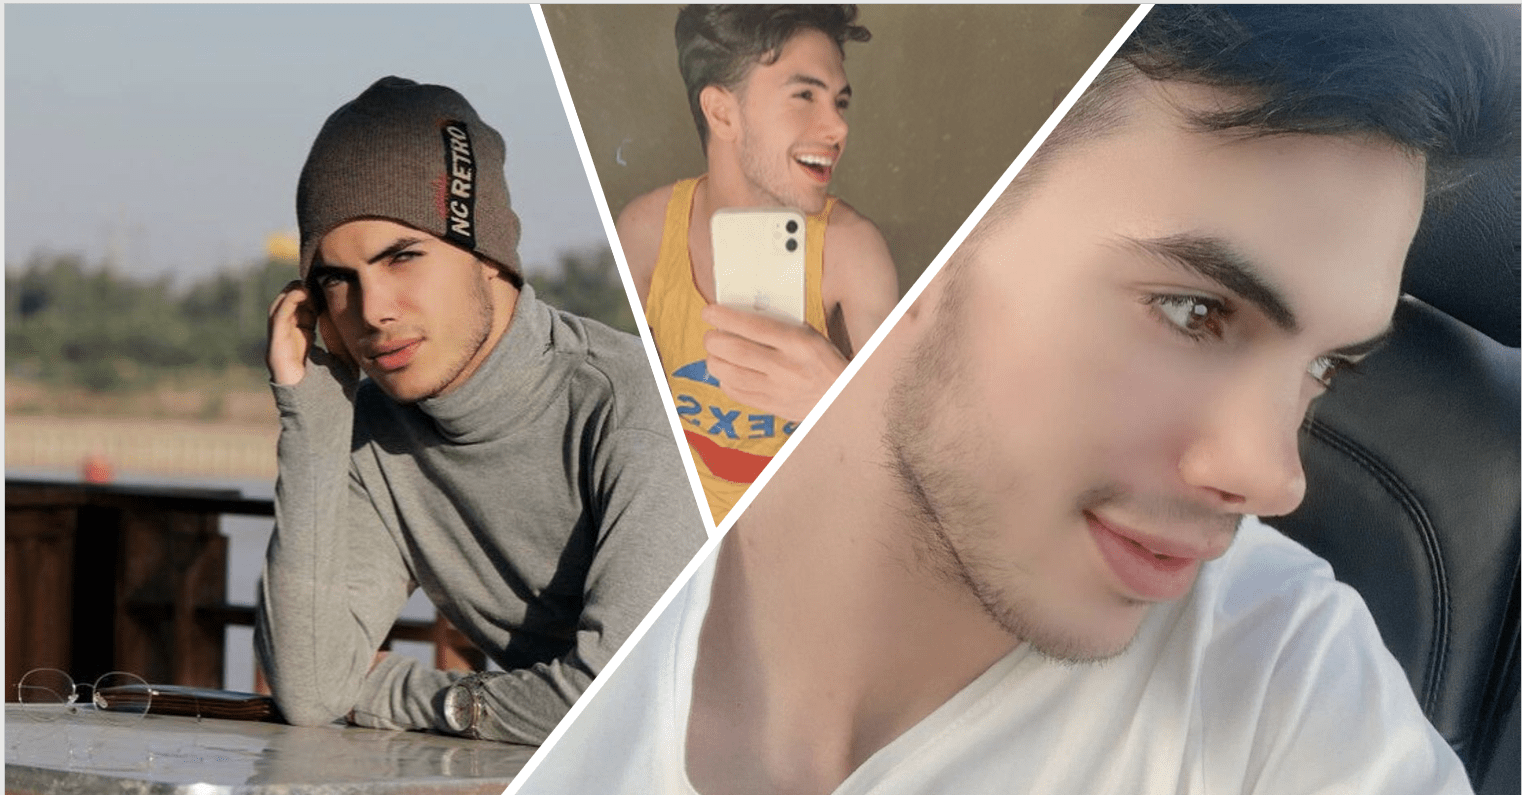 Gay Iranian Murdered By Own Family He Could Not Escape Fast Enough •  Instinct Magazine